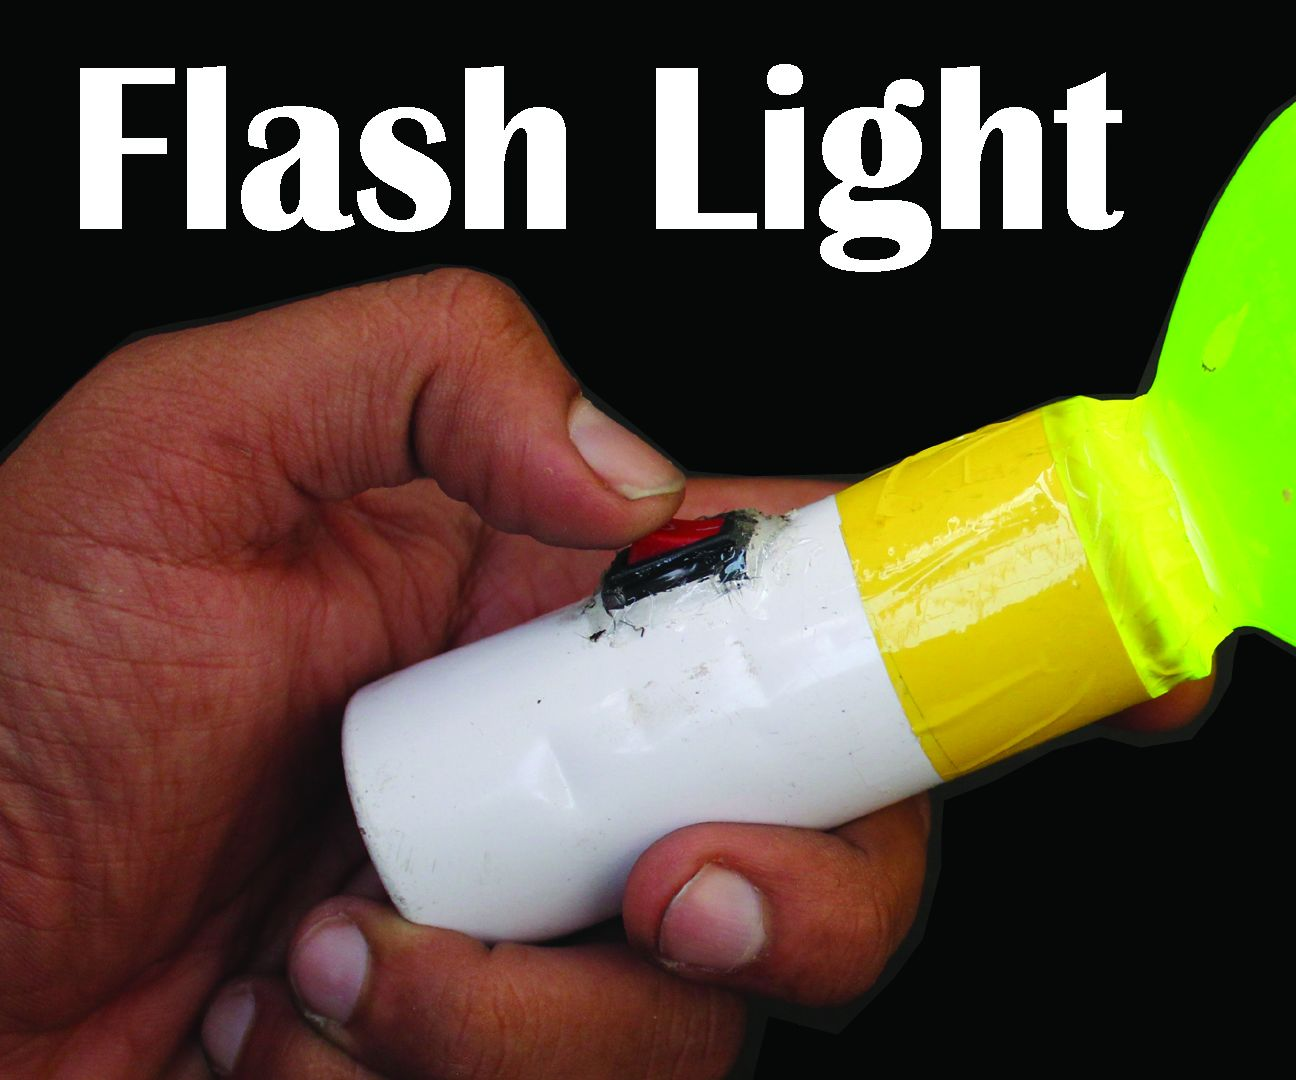 How To Make Flash Light Using Plastic and Deodorant Bottles